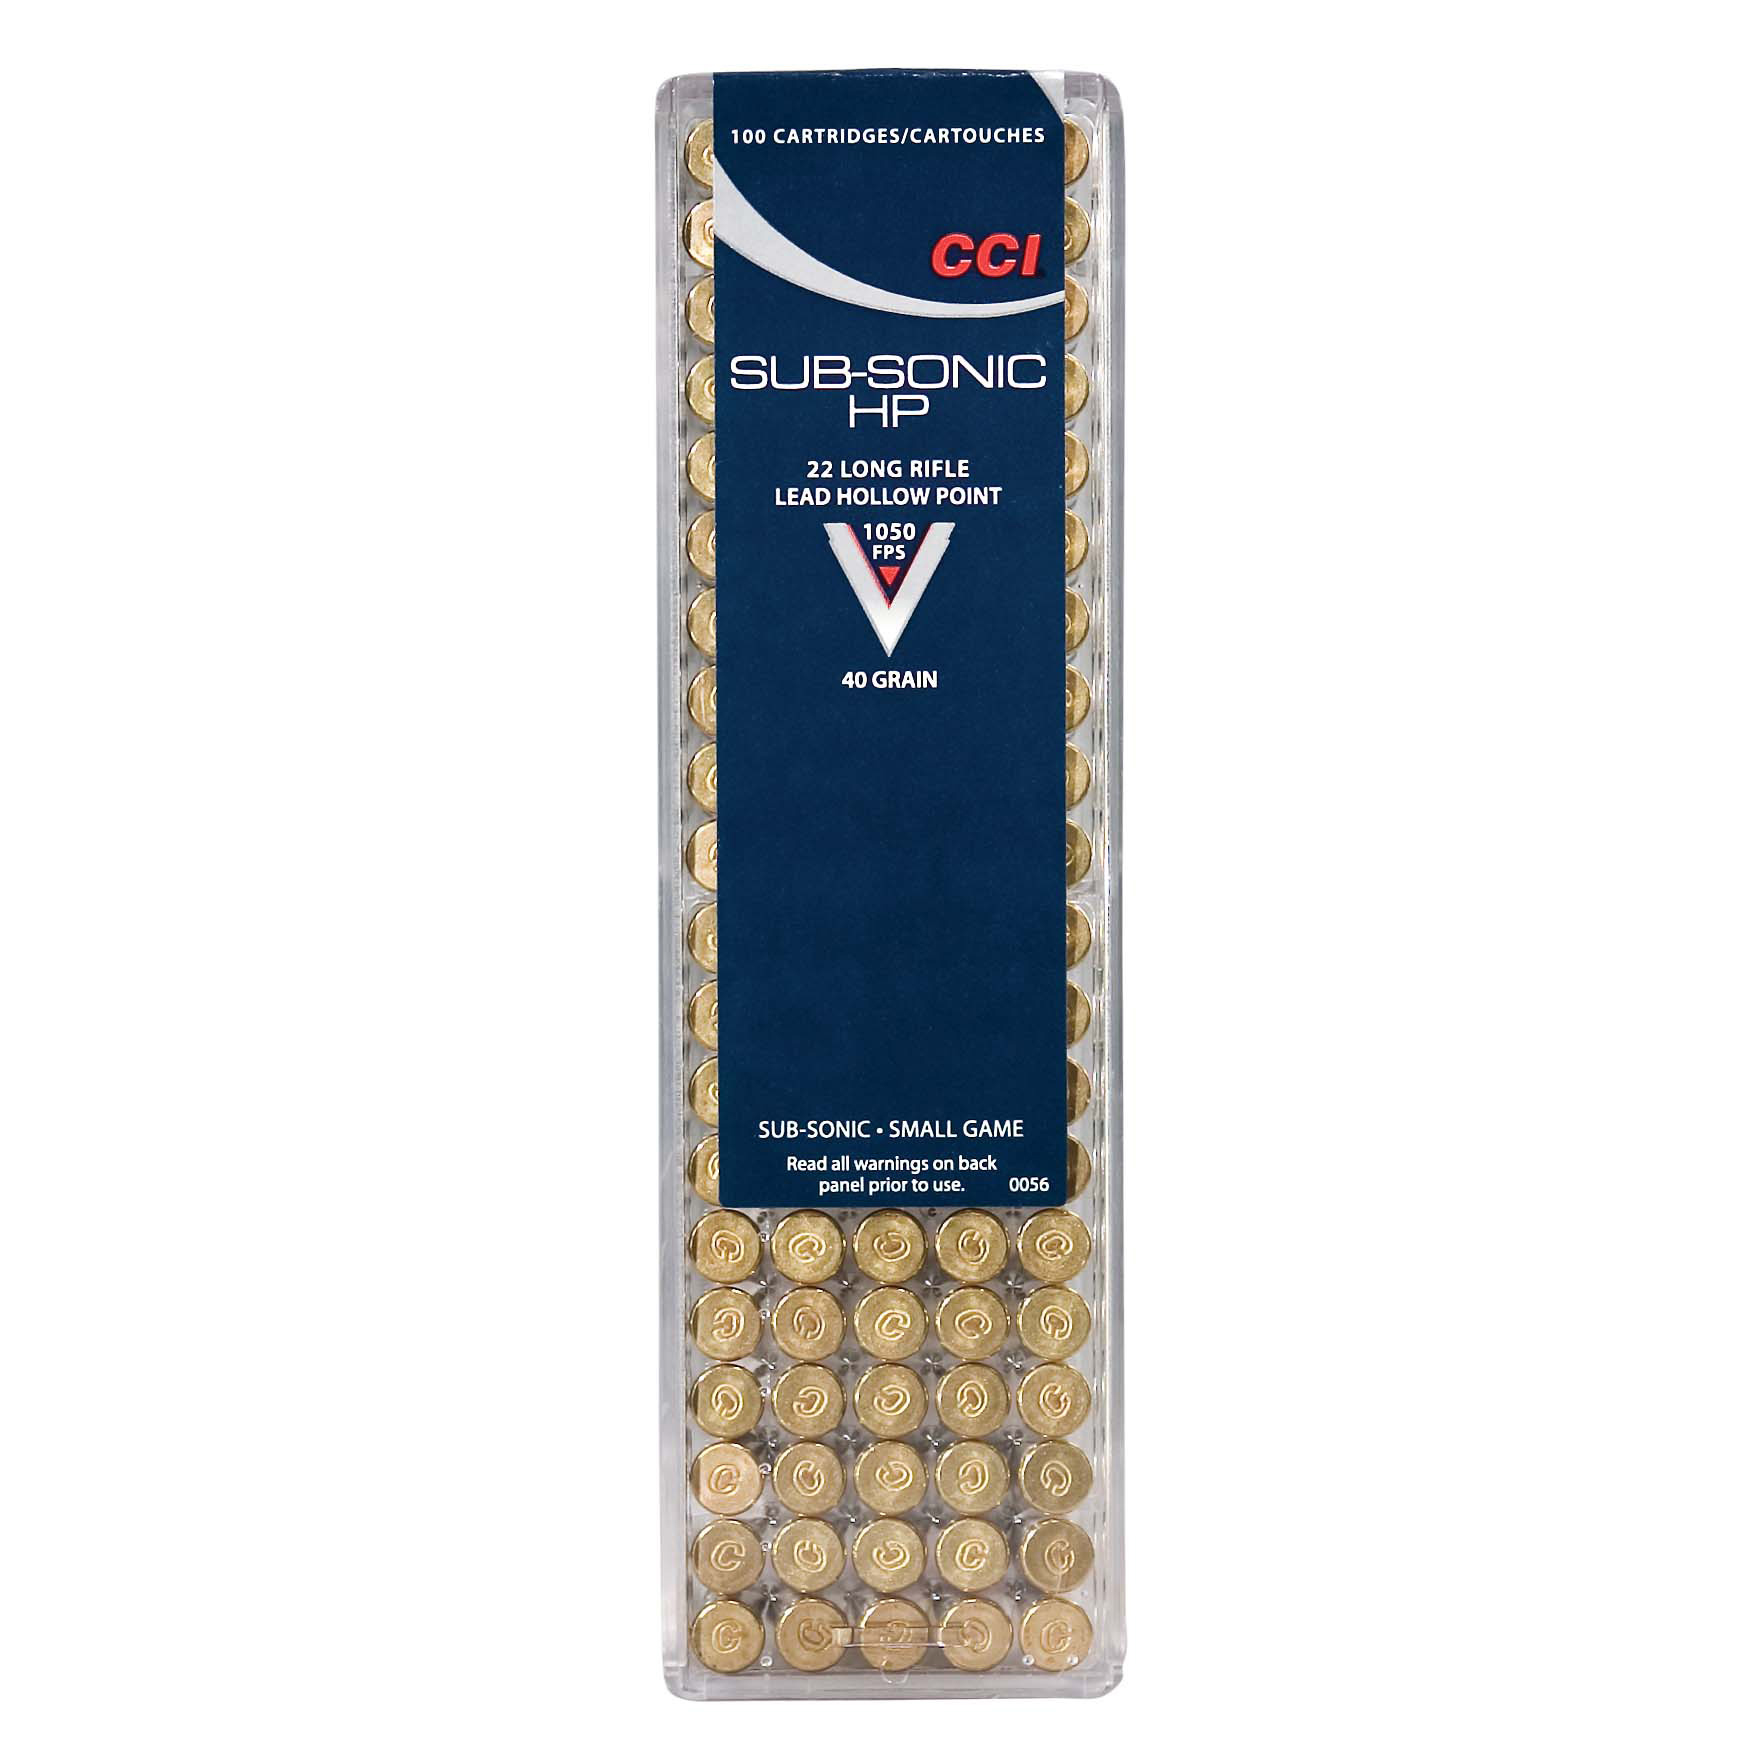 Speer Sub-Sonic HP Small Game Ammo, 22 LR, 40 gr, LHP